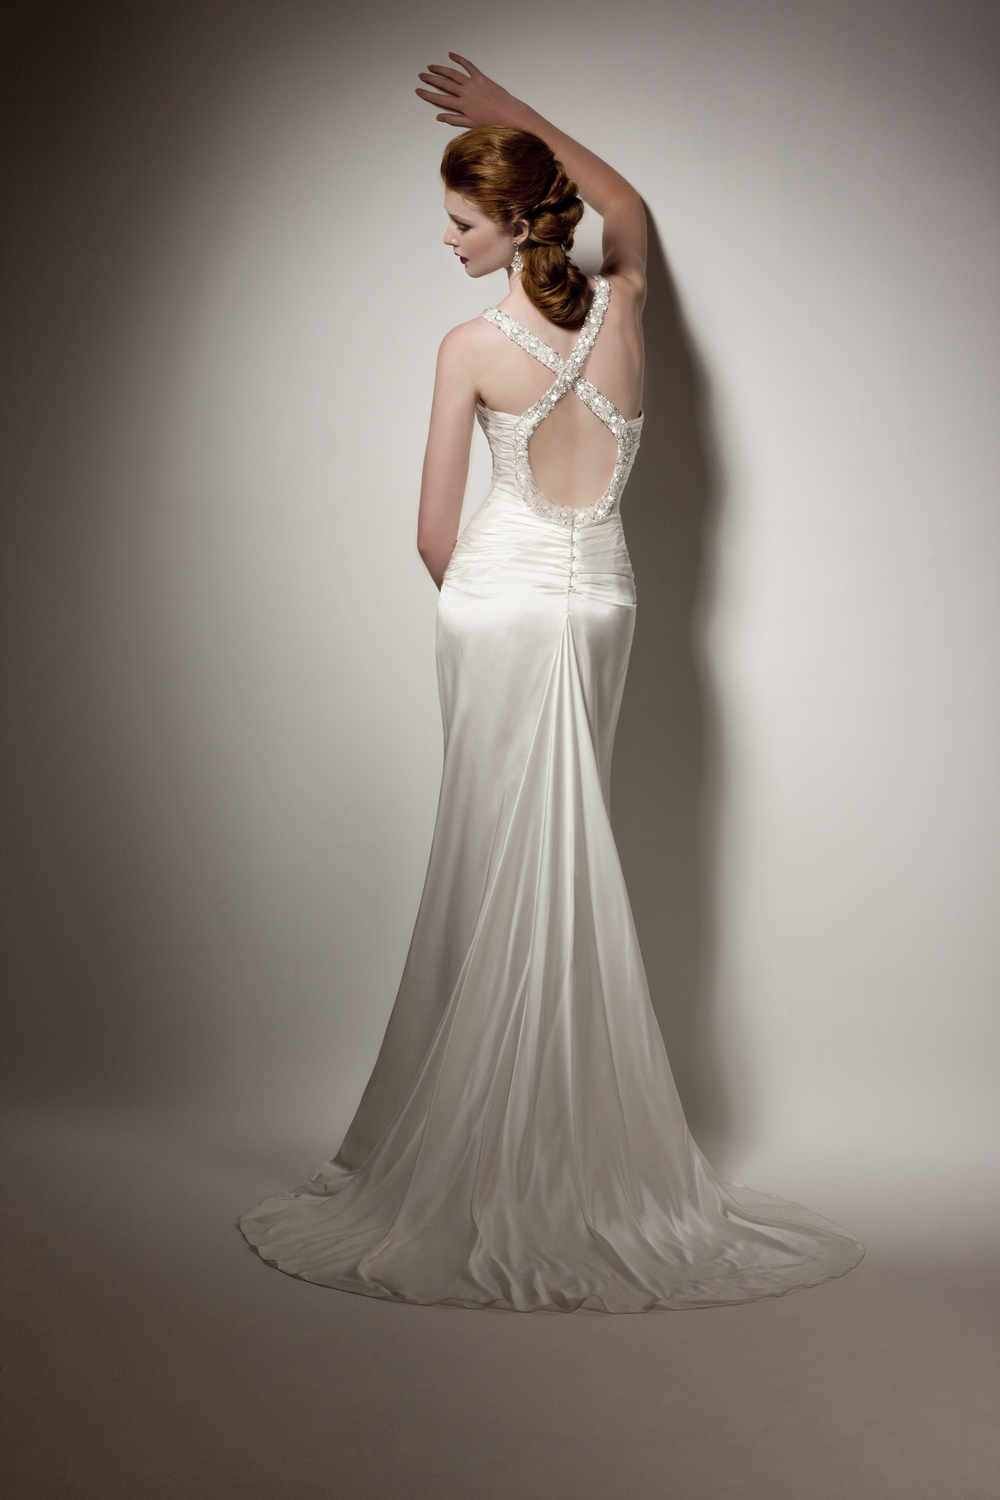 Martina-liana-wedding-dresses-2010-2011-299-back.original